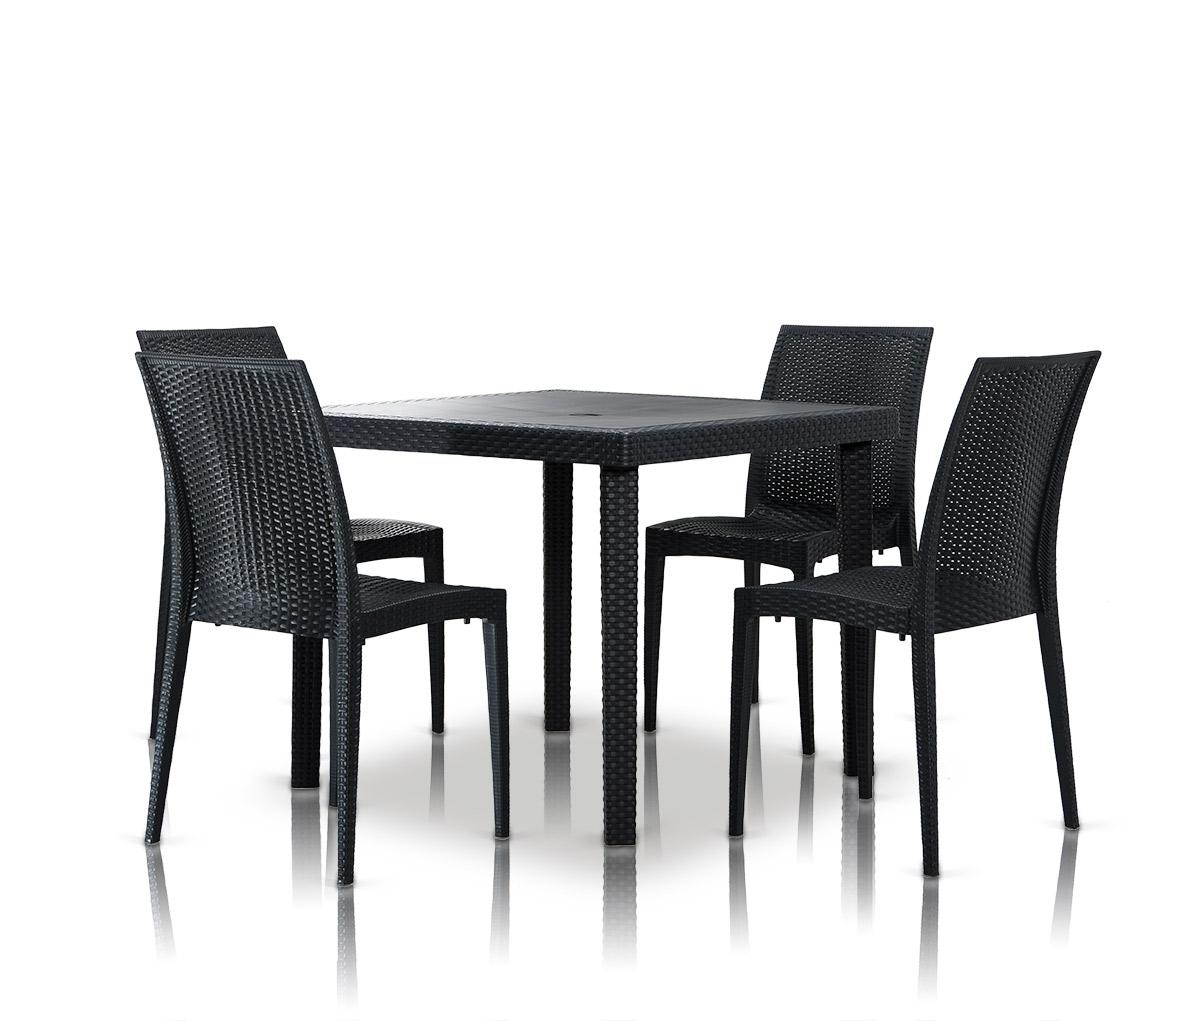 bistrot modern square dining table set. Black Bedroom Furniture Sets. Home Design Ideas